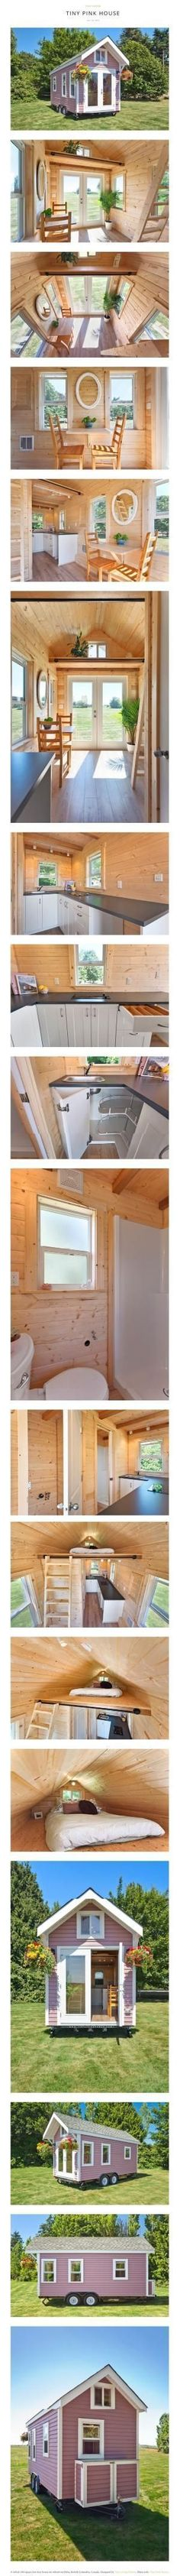 Discover häuser ideas on pinterest small houses tiny house design